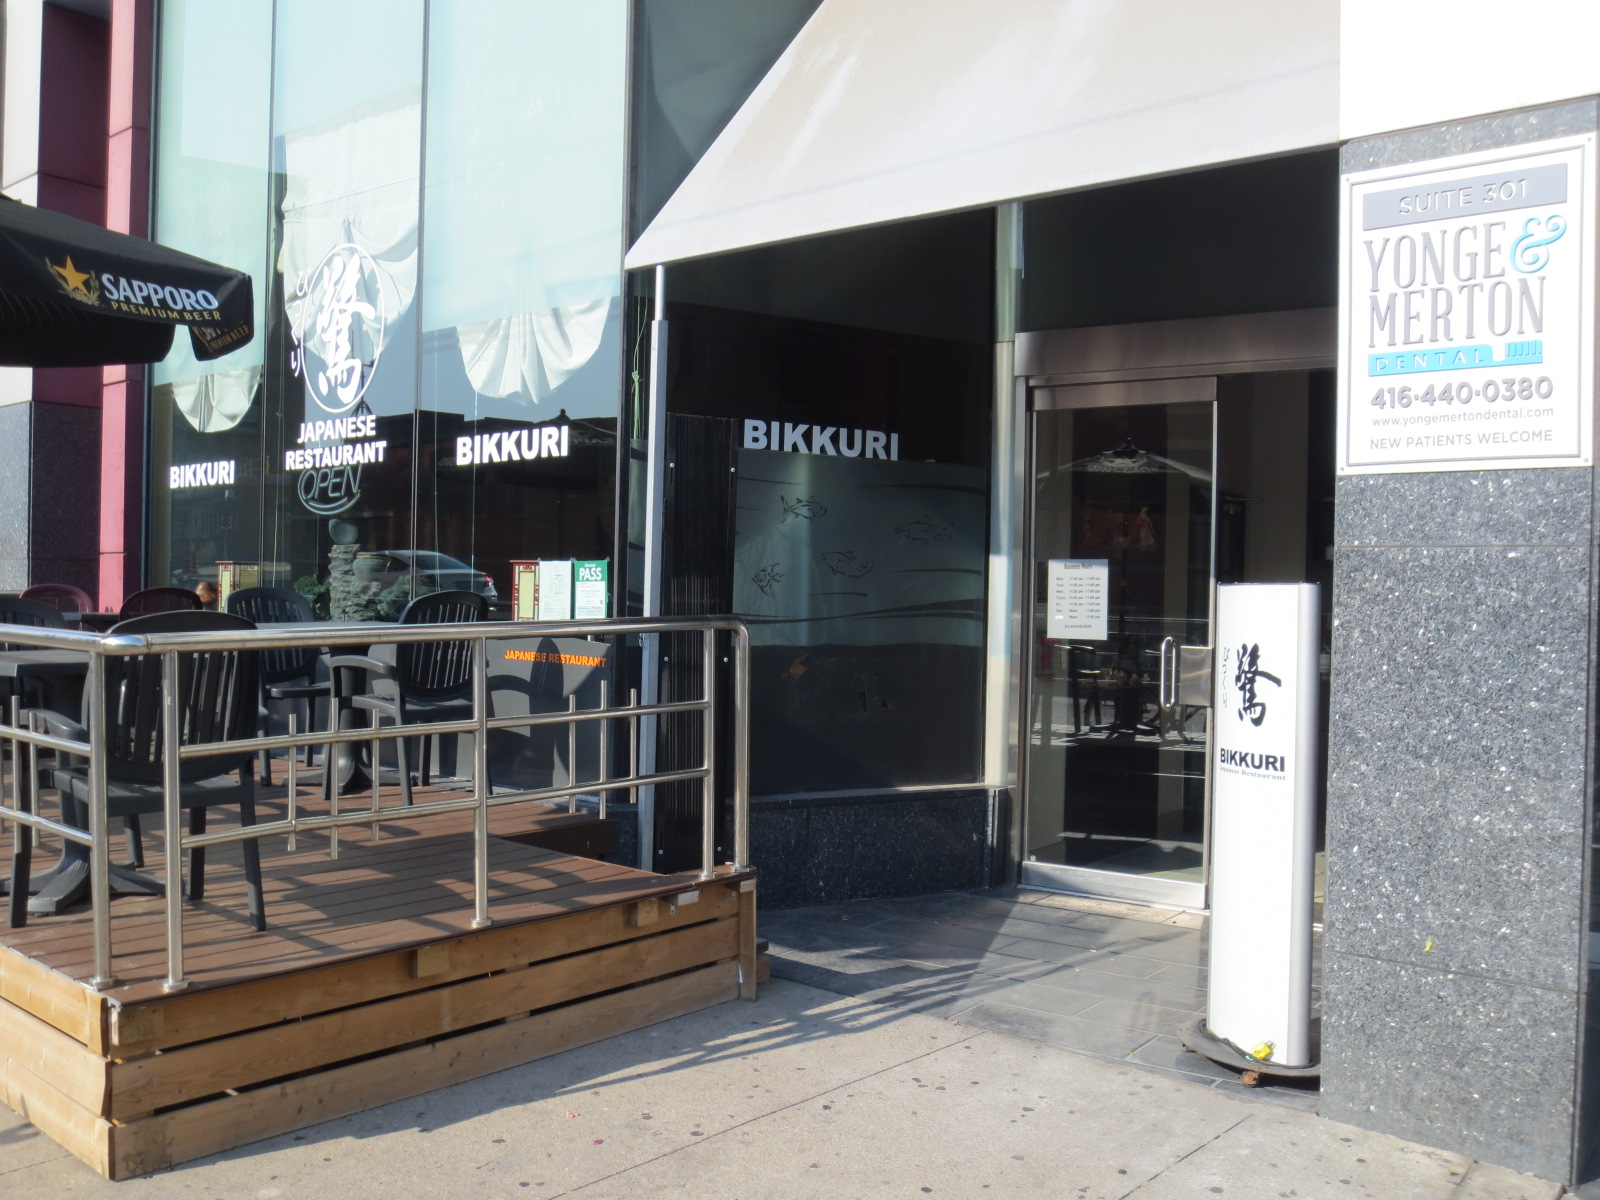 Picture of front entrance of Bikkuri. Patio not accessible is shown